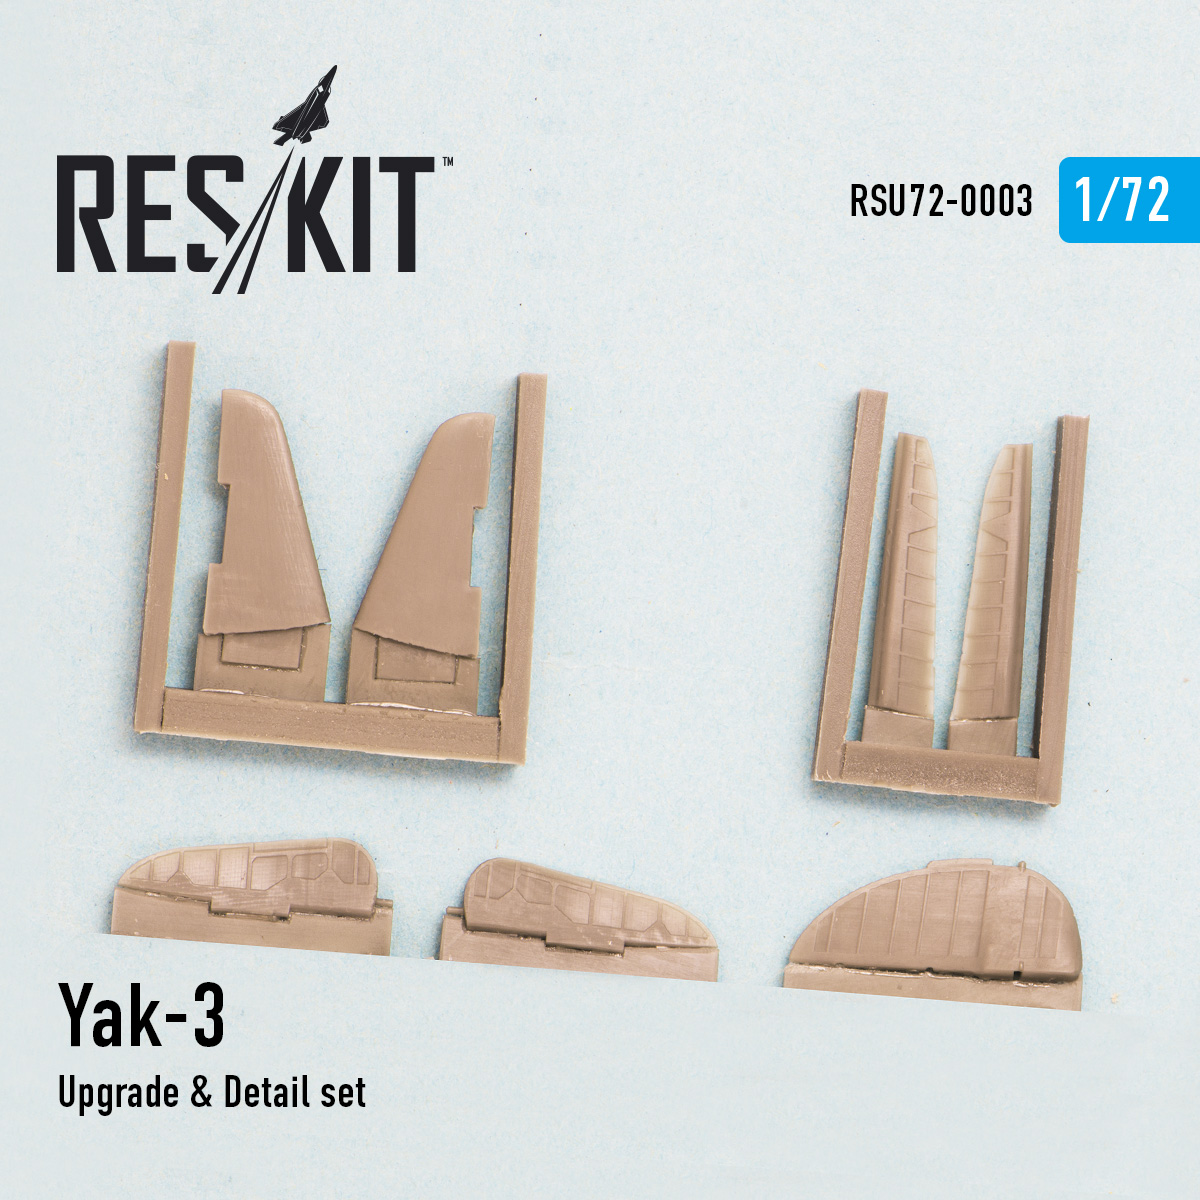 1/72 Yakovlev Yak-3 Upgrade & Detail set